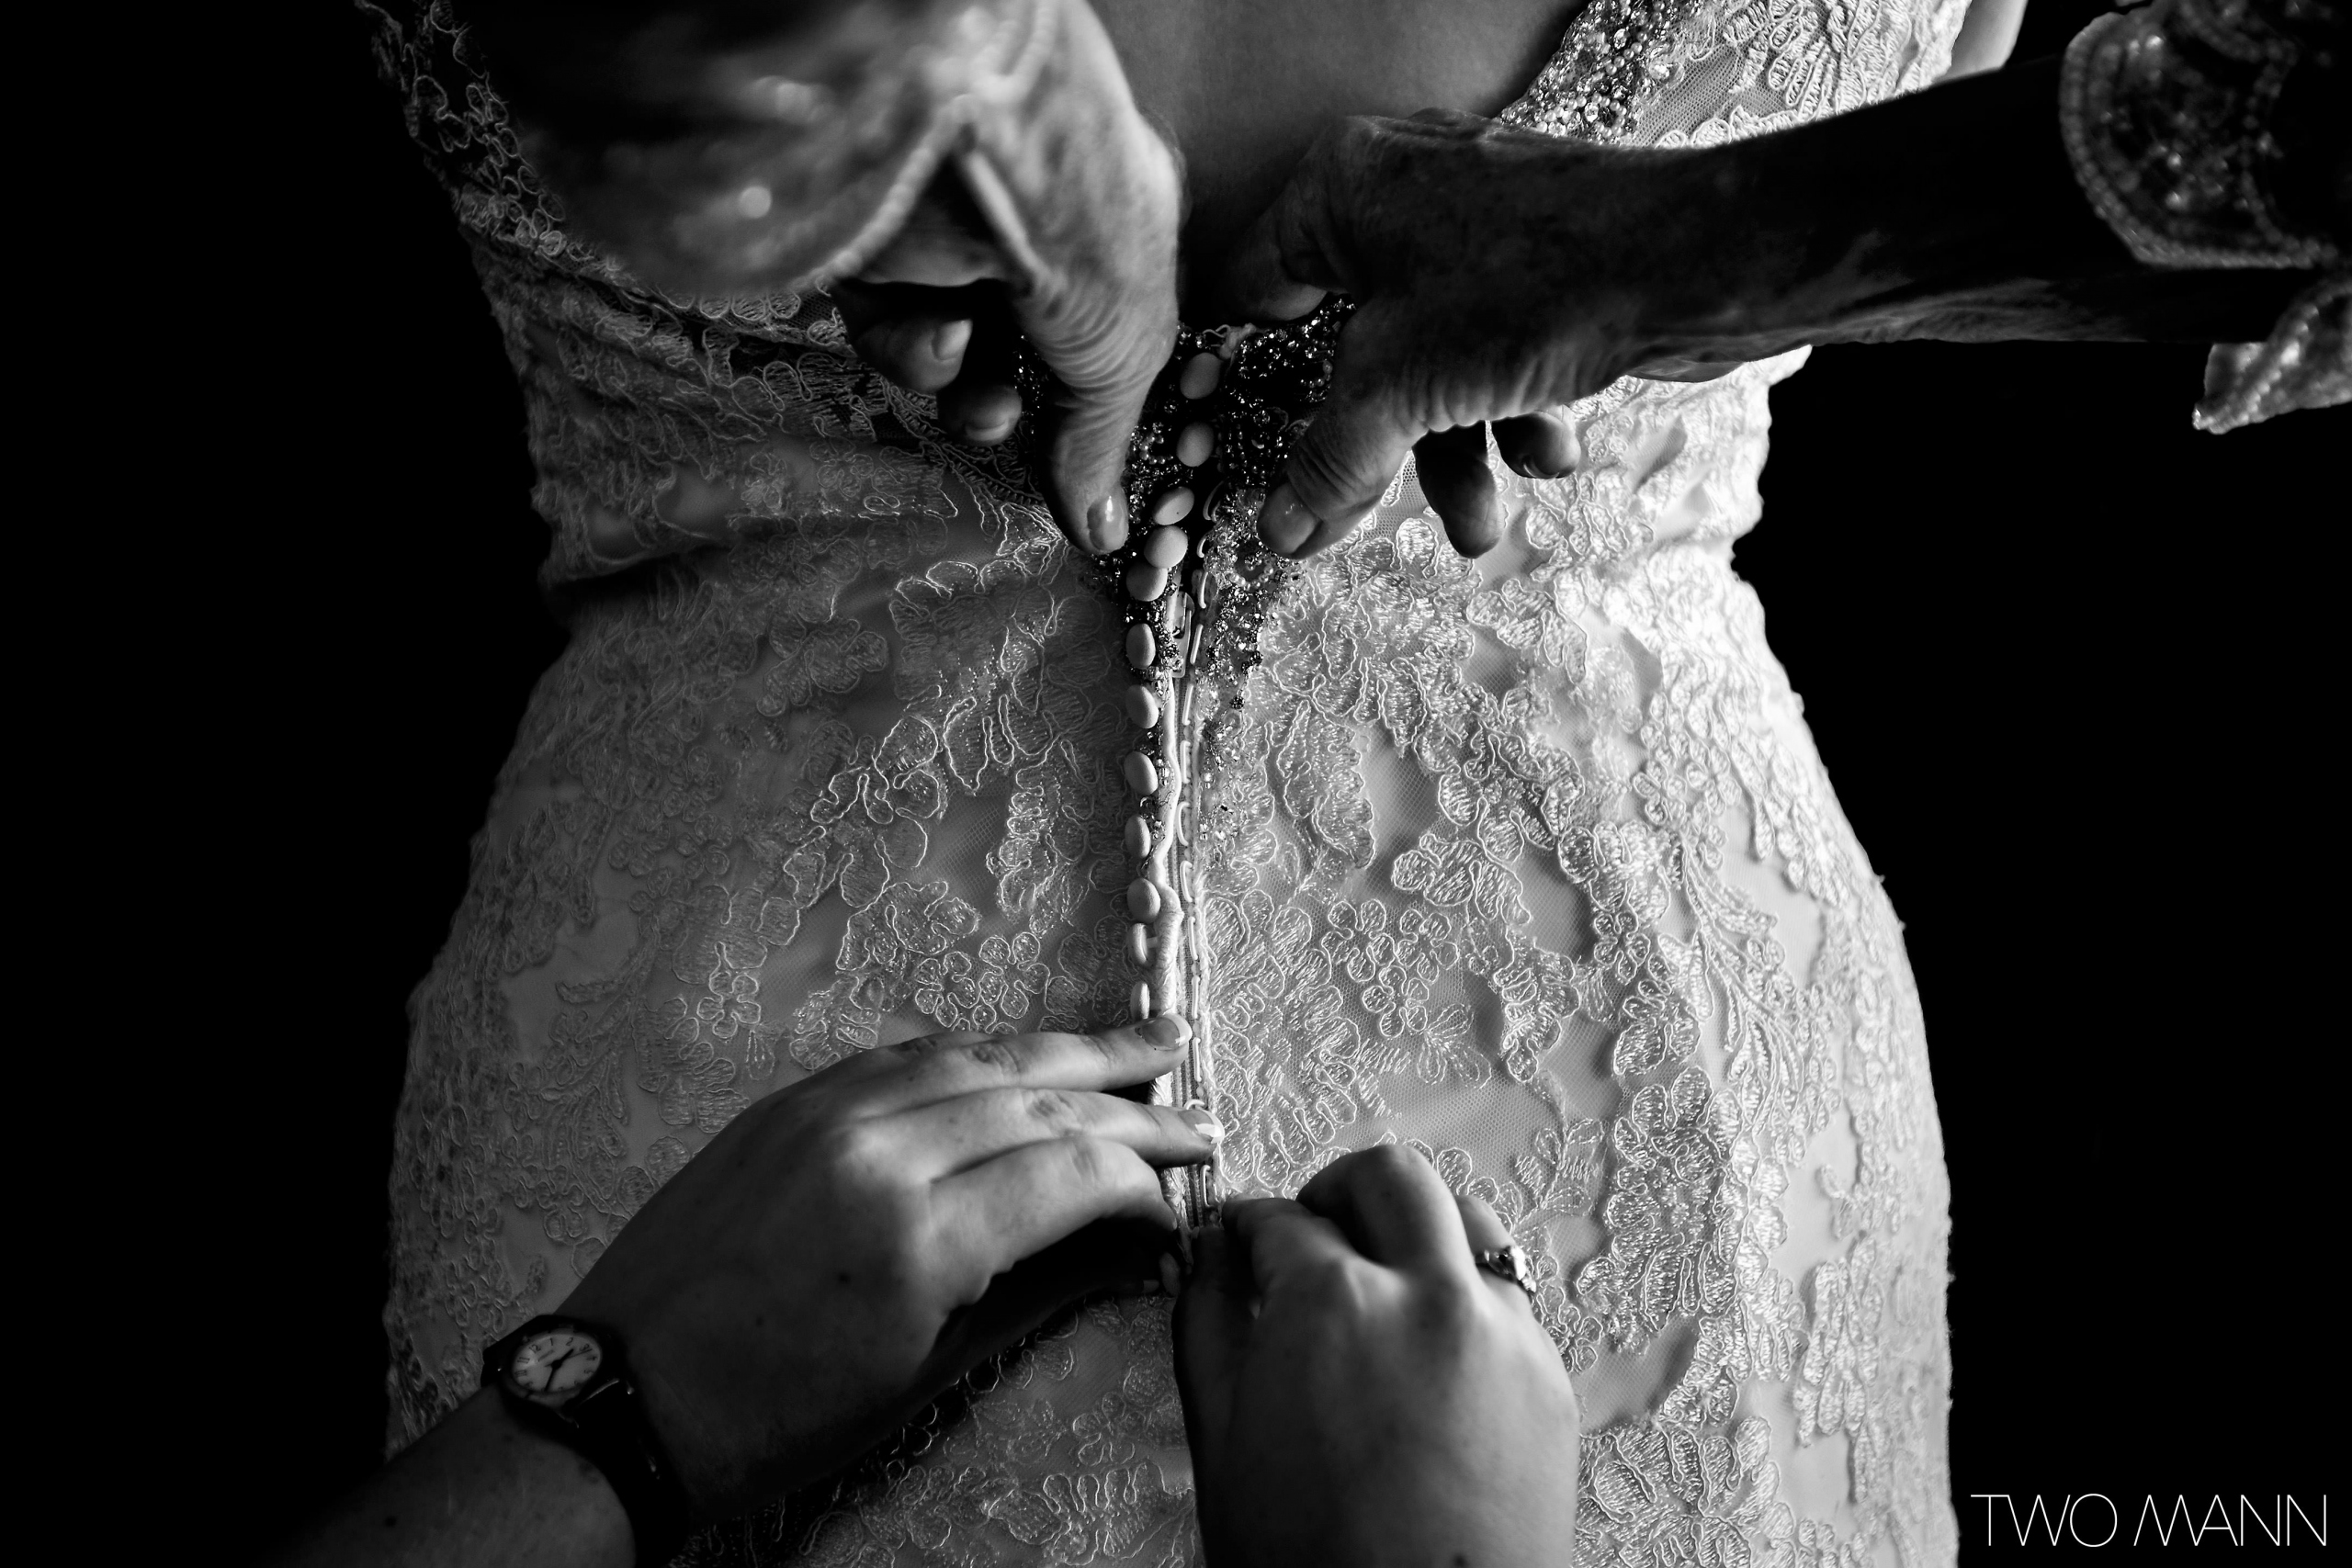 helping the bride zip up the wedding dress with back zipper